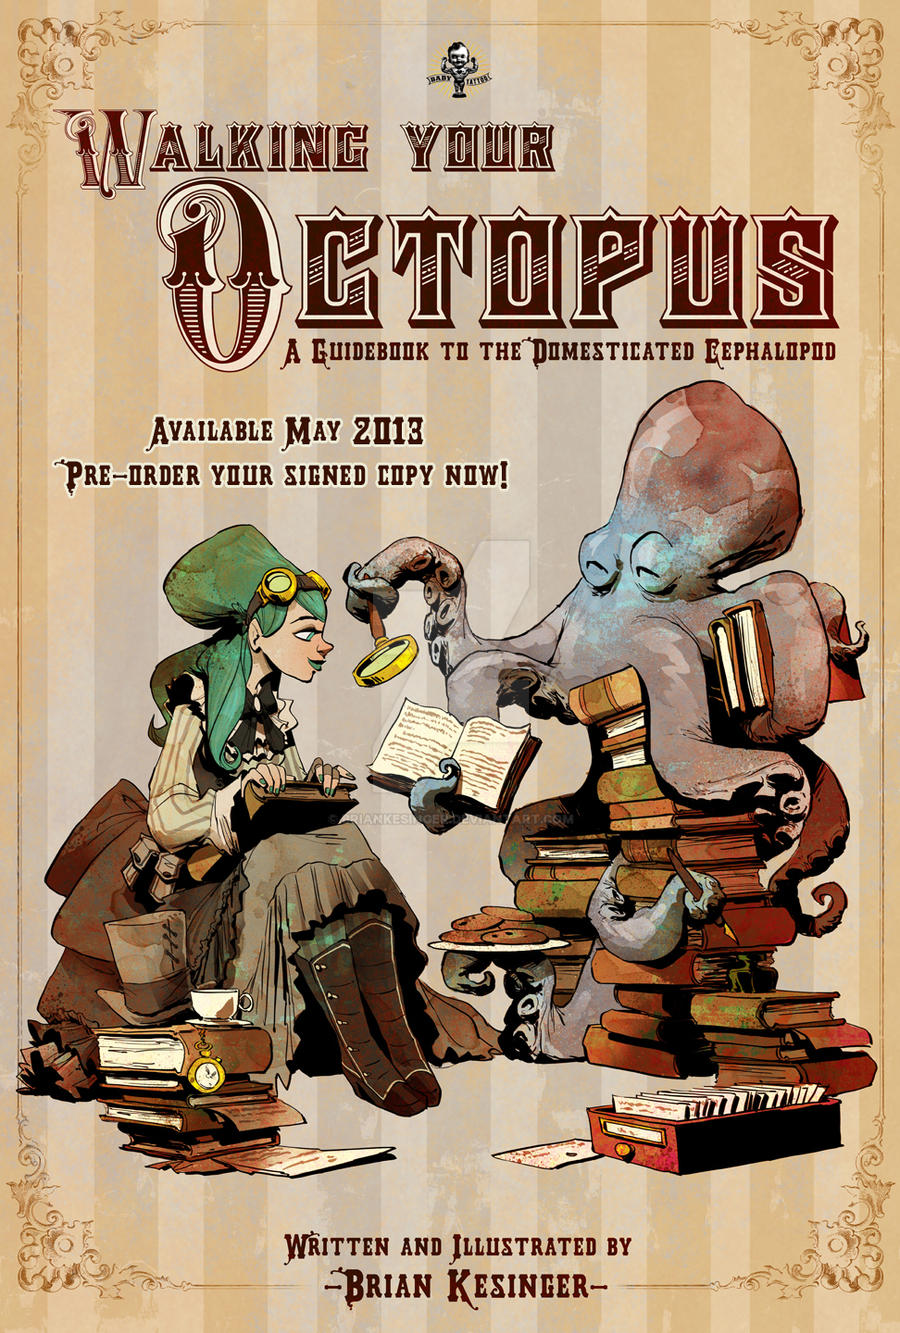 book poster by BrianKesinger